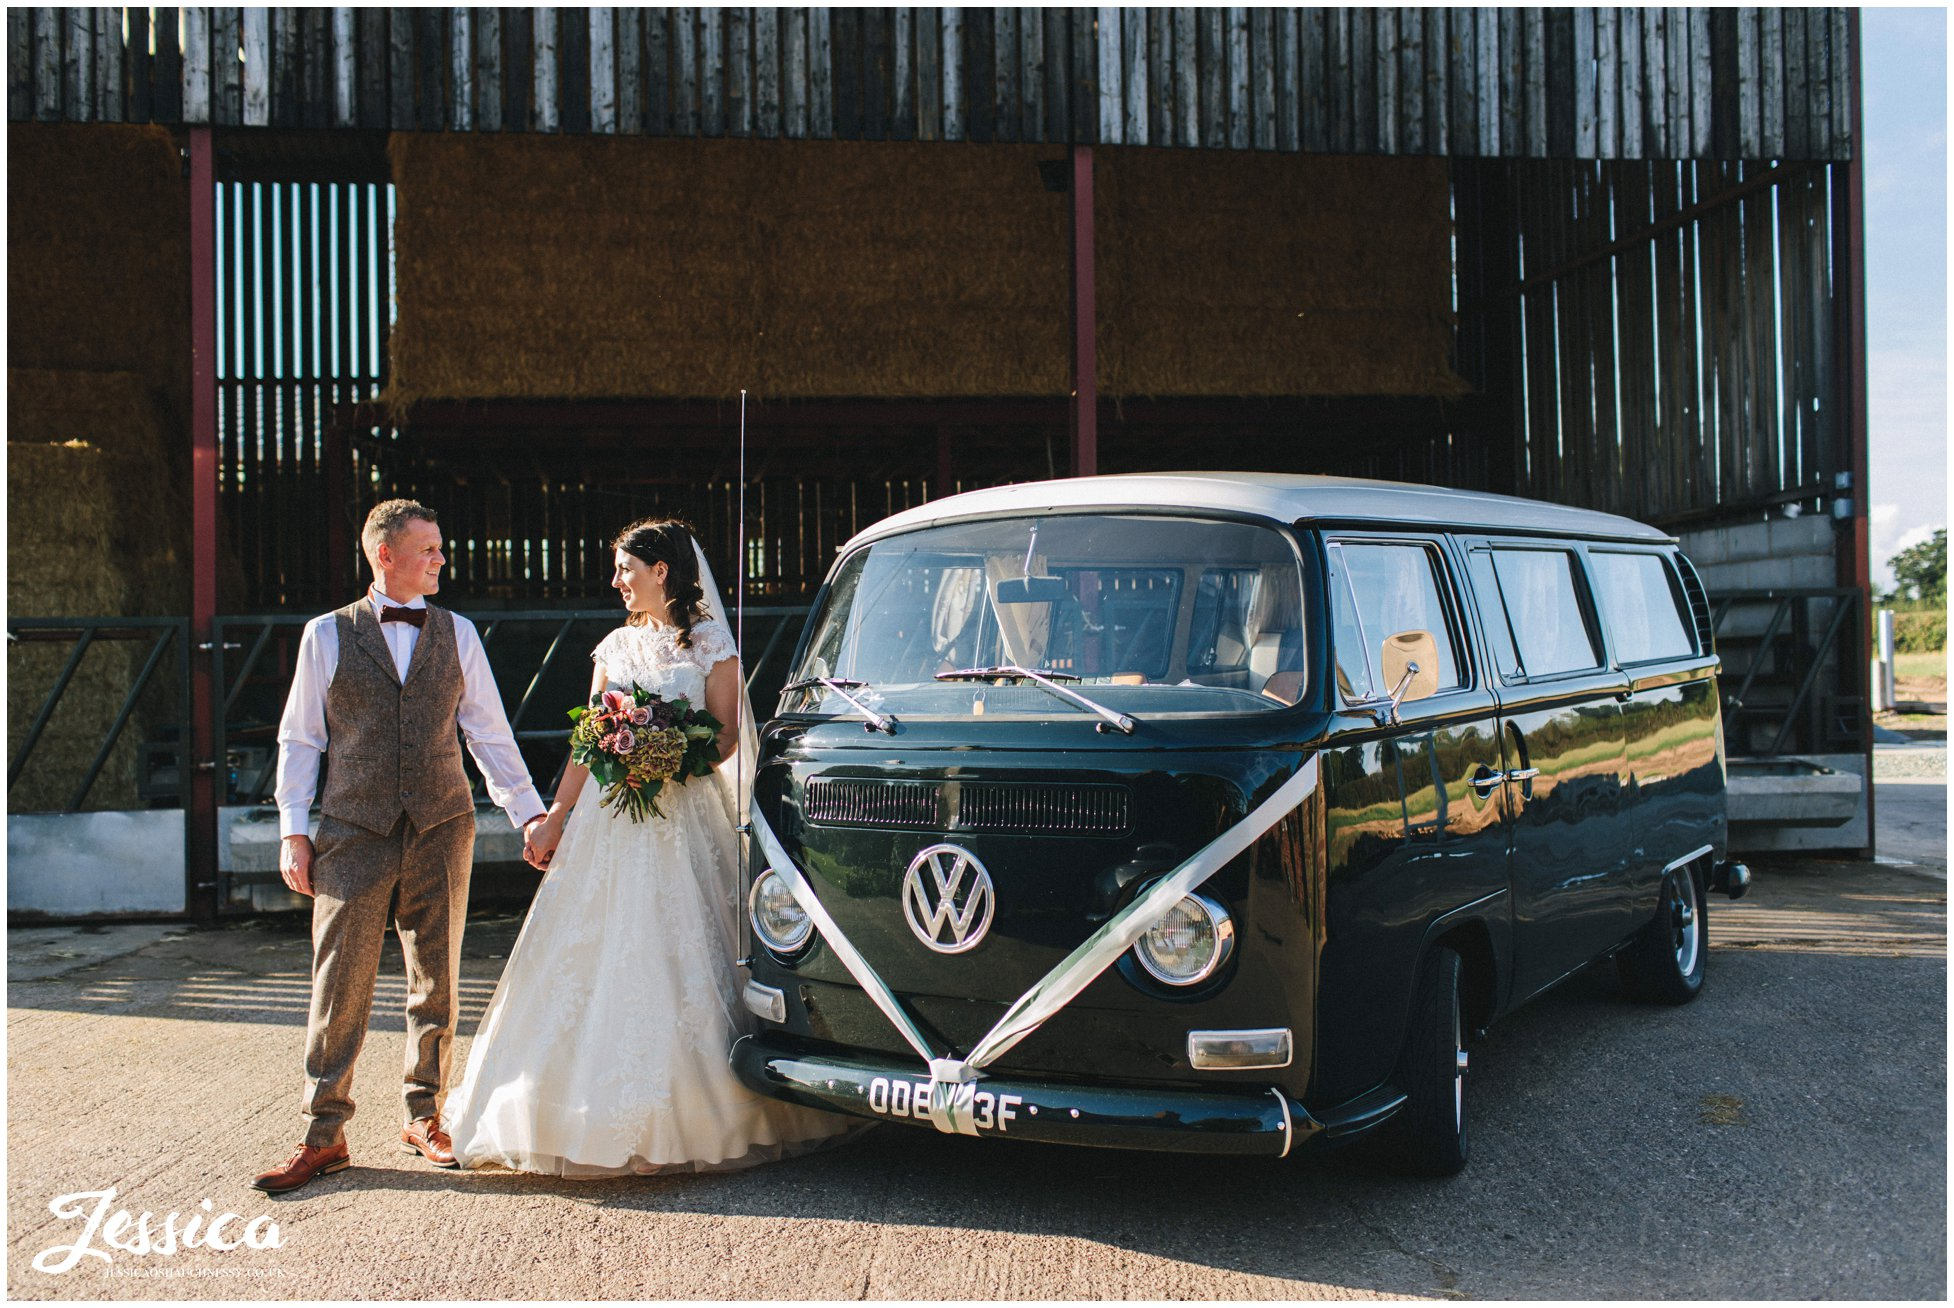 couple pose in front of vintage VW campervan